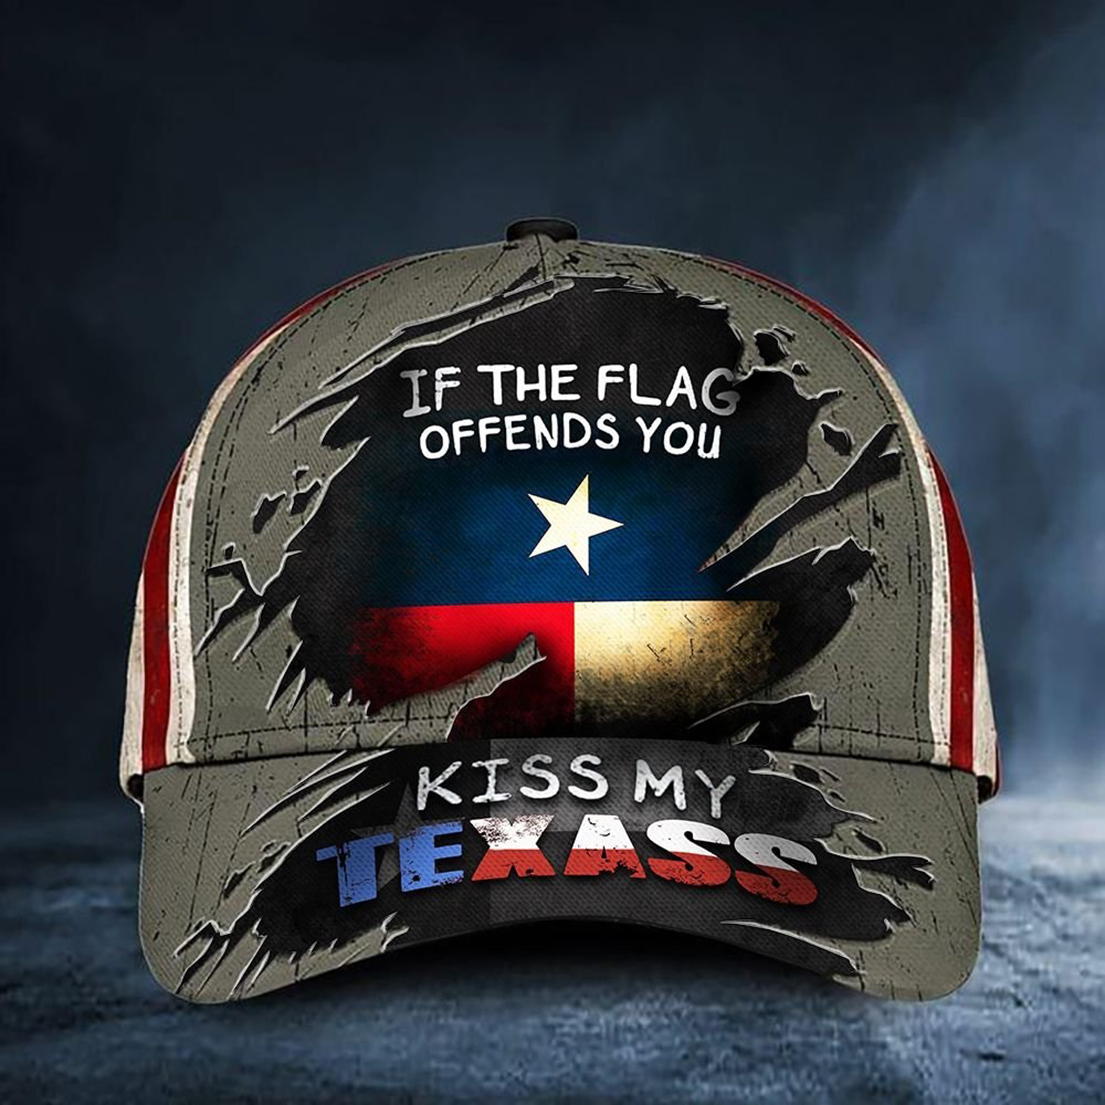 If the flag offends you kiss my texass classic cap hat - Picture 1